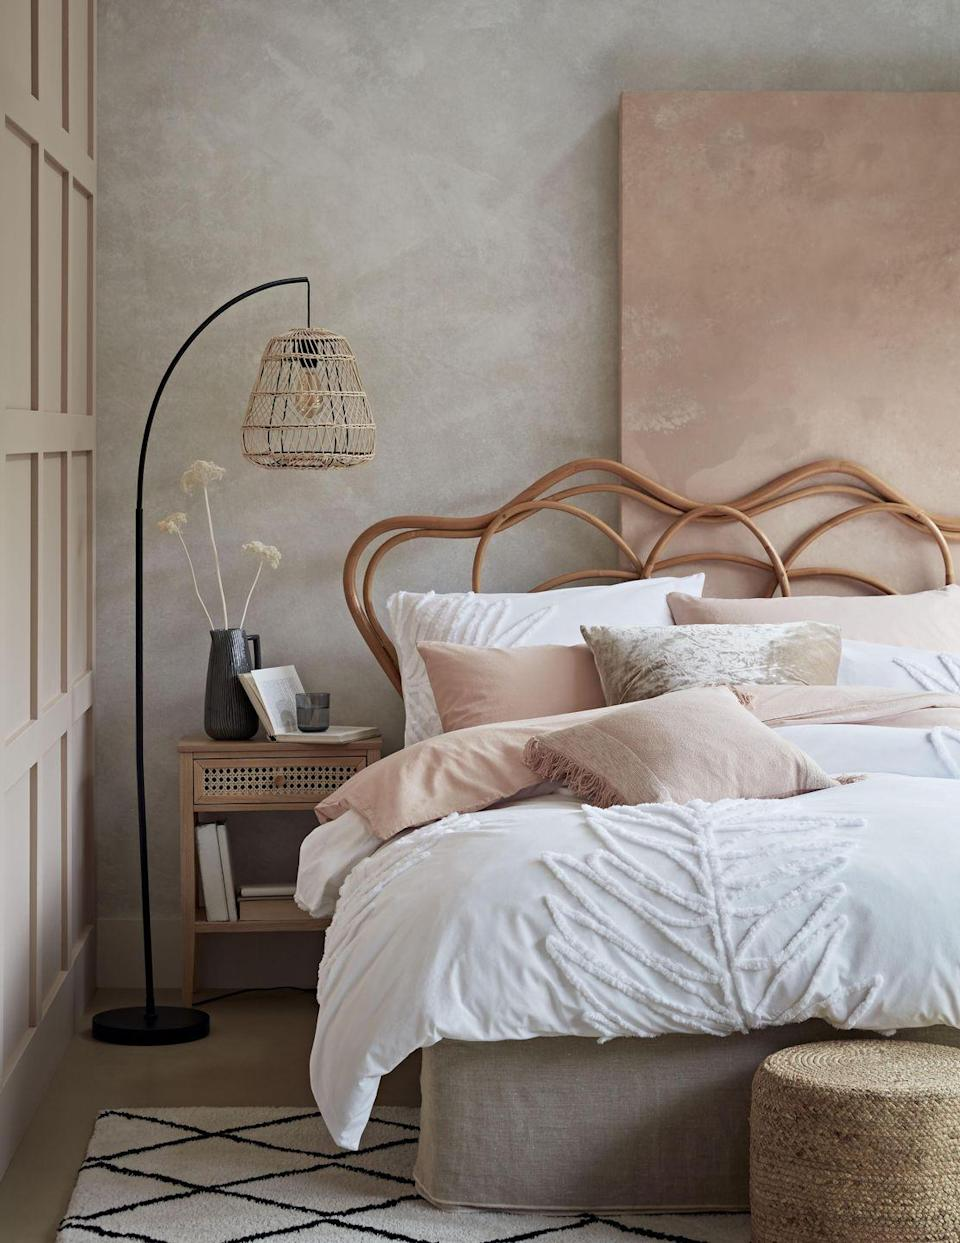 """<p>Create a pared-down look with wicker and rattan accessories. From on-trend lights to wicker bedside tables, these will complement any pink and grey bedroom scheme. Complete the look with a vase of <a href=""""https://www.housebeautiful.com/uk/decorate/display/a35418217/dried-flowers/"""" rel=""""nofollow noopener"""" target=""""_blank"""" data-ylk=""""slk:dried flowers"""" class=""""link rapid-noclick-resp"""">dried flowers</a>.</p><p>• Shop the look at <a href=""""https://www.habitat.co.uk/"""" rel=""""nofollow noopener"""" target=""""_blank"""" data-ylk=""""slk:Habitat"""" class=""""link rapid-noclick-resp"""">Habitat</a> </p>"""